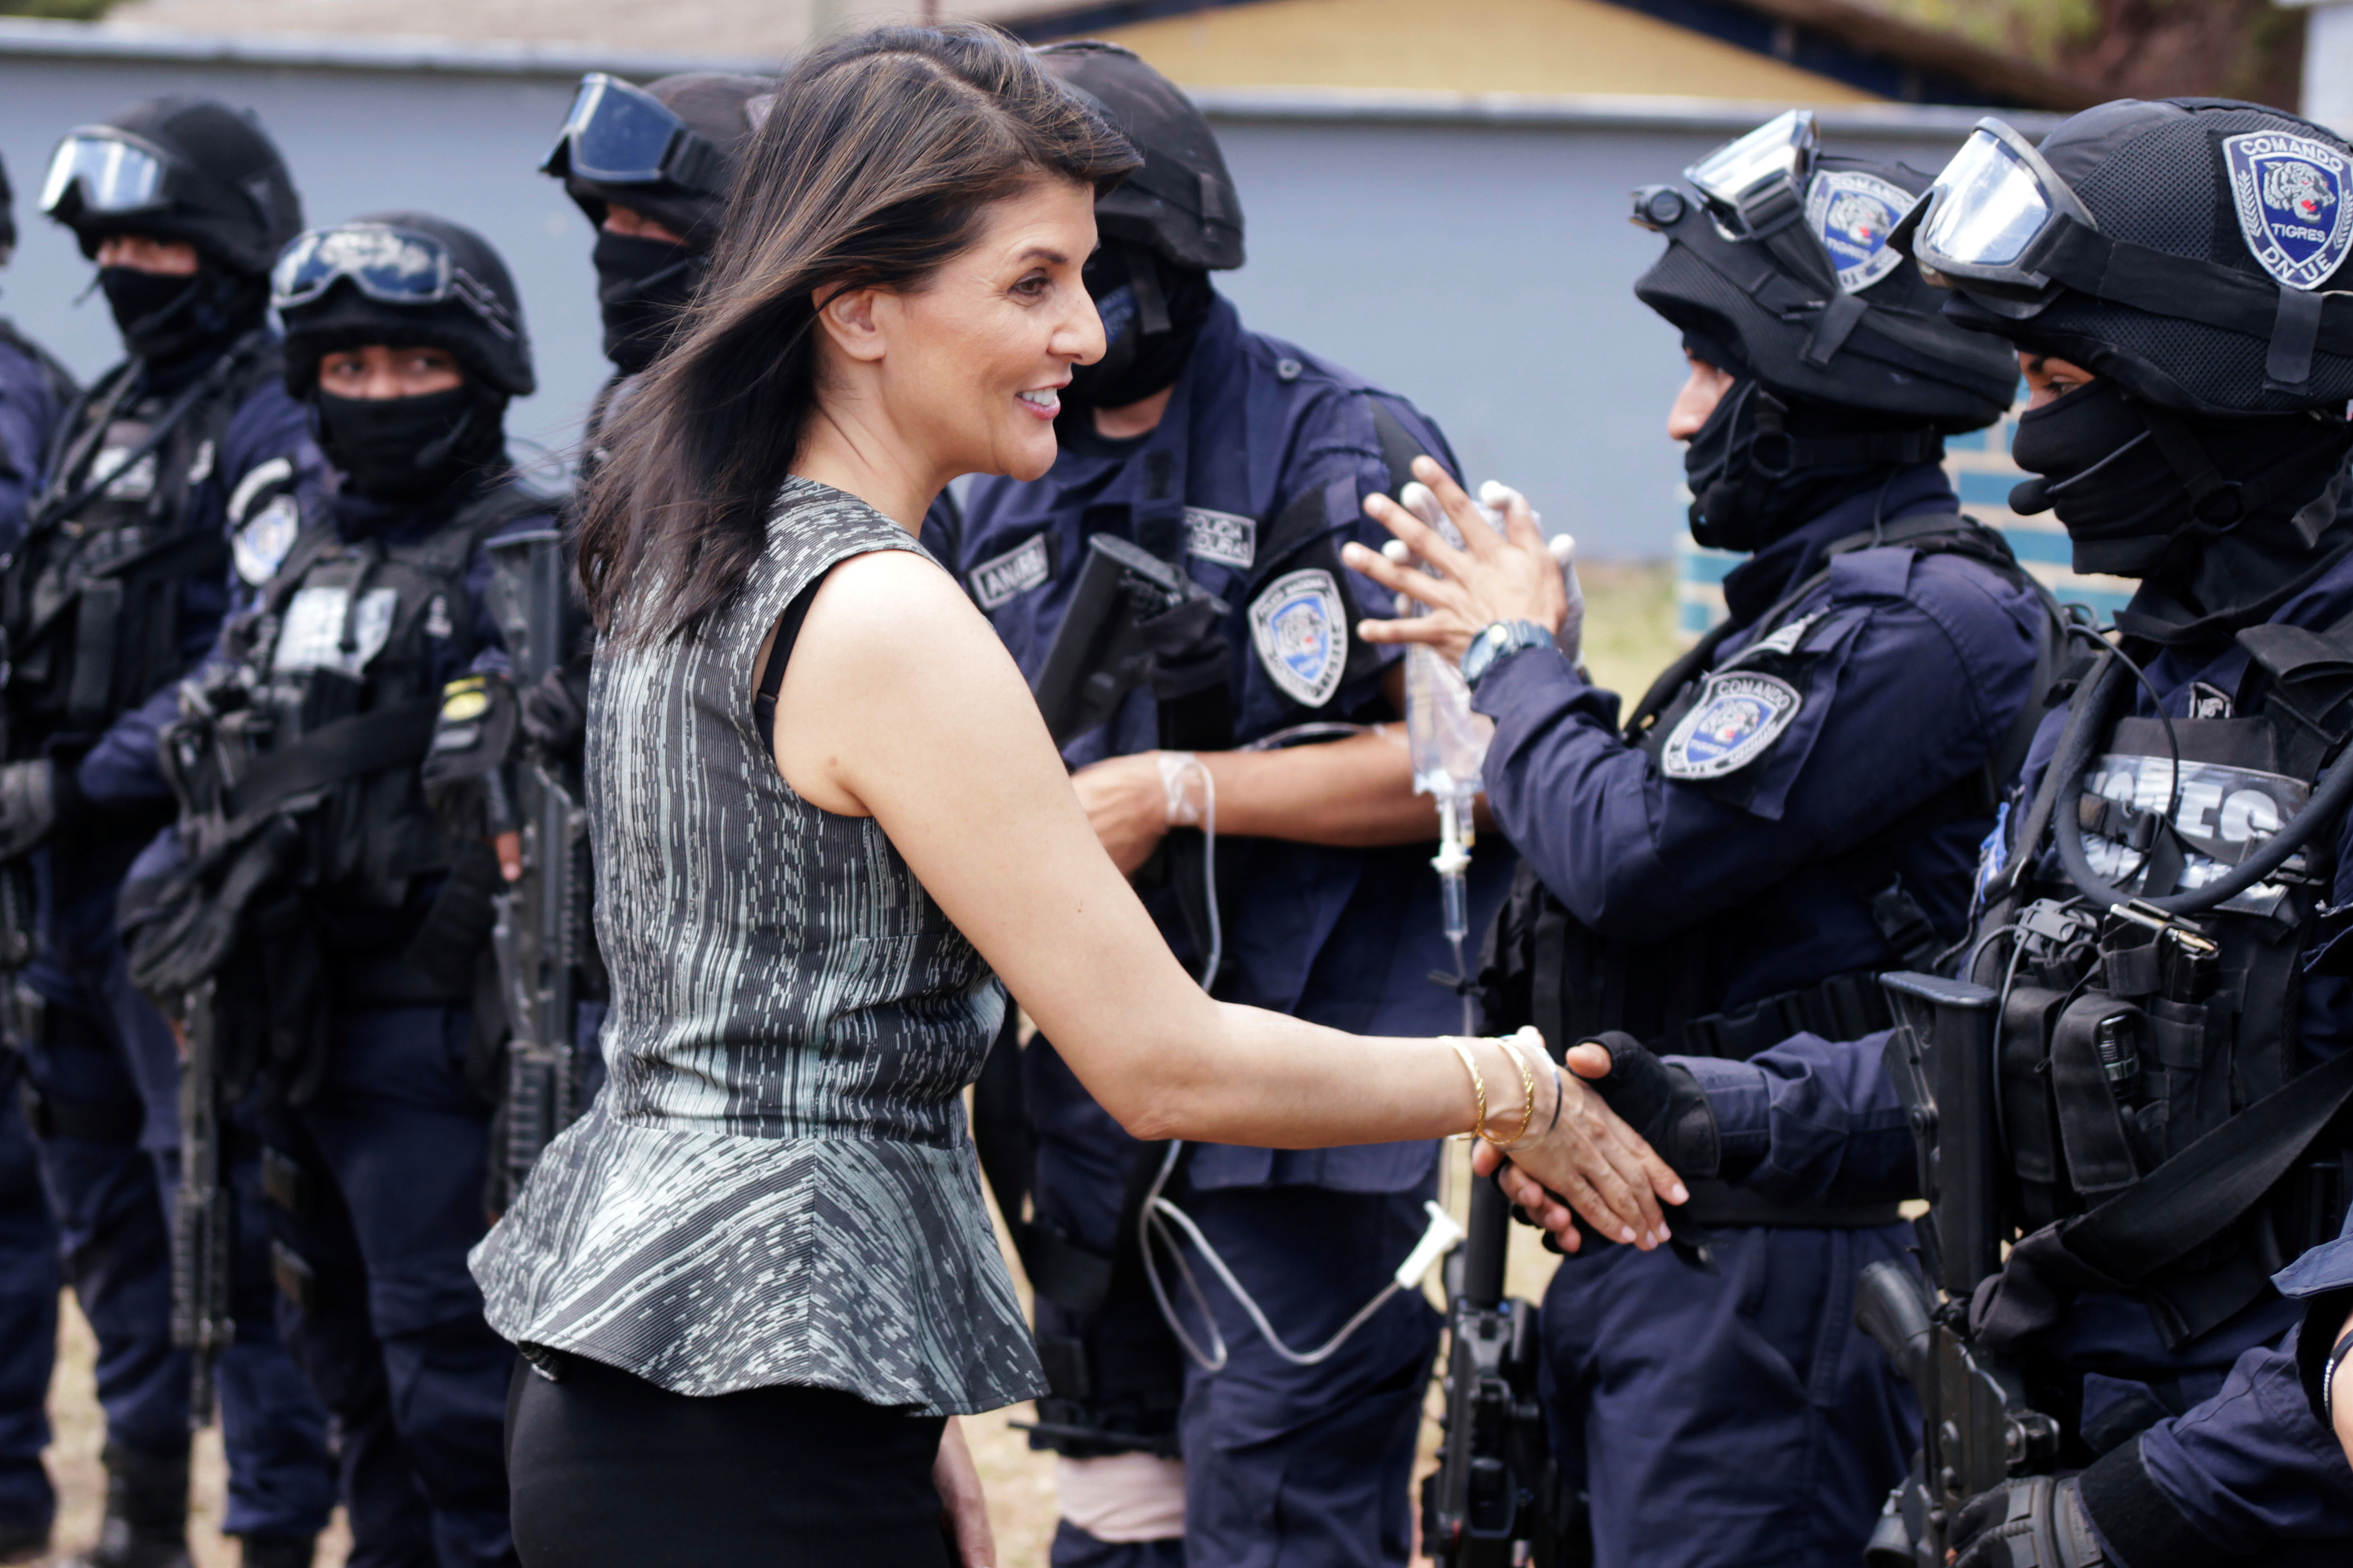 U.S. Ambassador to the United Nations Nikki Haley shakes hands with members of the COBRAS, Honduras National Police Special Forces, at their base in Tegucigalpa, Feb. 27, 2018.